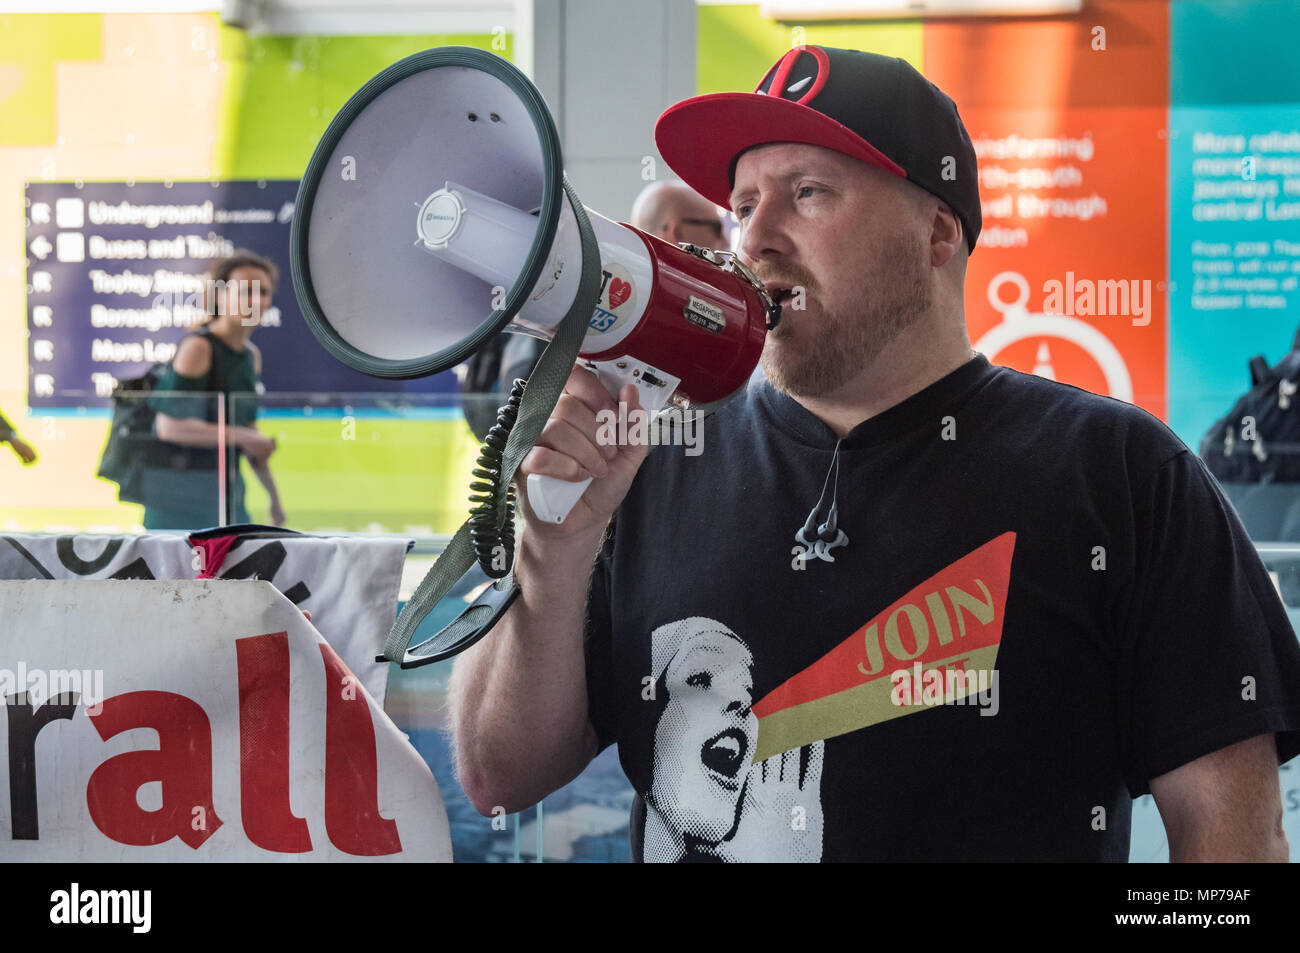 London, UK. 21st May 2018. A DPAC protester in an RMT t-shirt speaks at the 'People's Picket' by disabled rail passengers from Disabled People Against Cuts along with the Association of British Commuters and RMT members outside London Bridge station. GTR uses a staff training guide in which they are dehumanised as 'PRM's  and staff are instructed to leave wheelchair users on the platform, even when they have arranged and pre-booked a journey. Credit: Peter Marshall/Alamy Live News - Stock Image